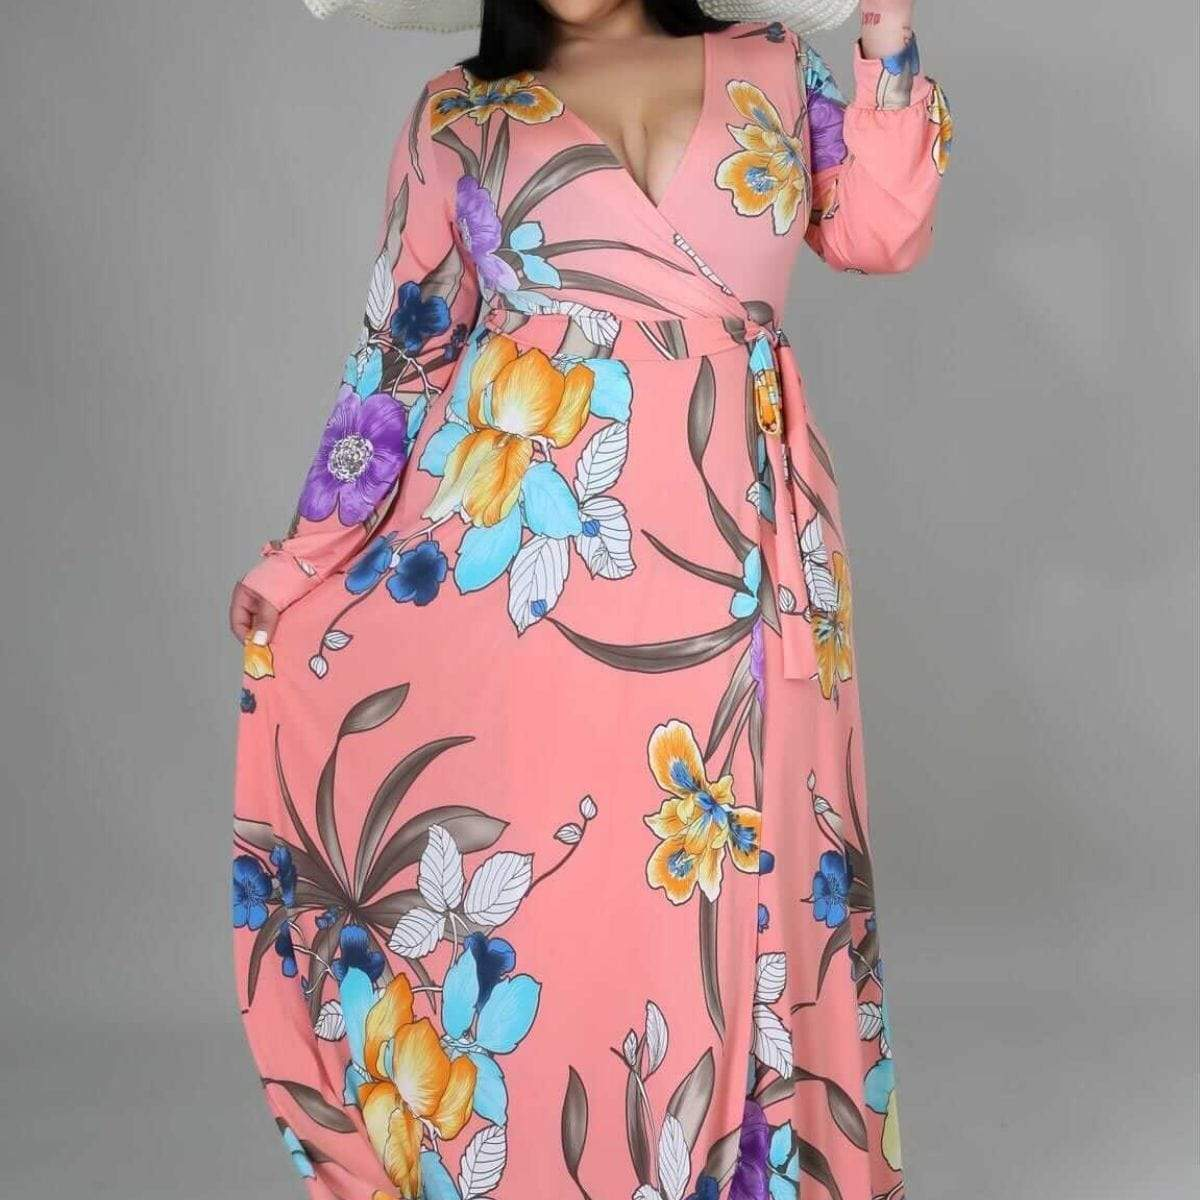 Venechia Print Loose Long Dress - Posh Shoppe